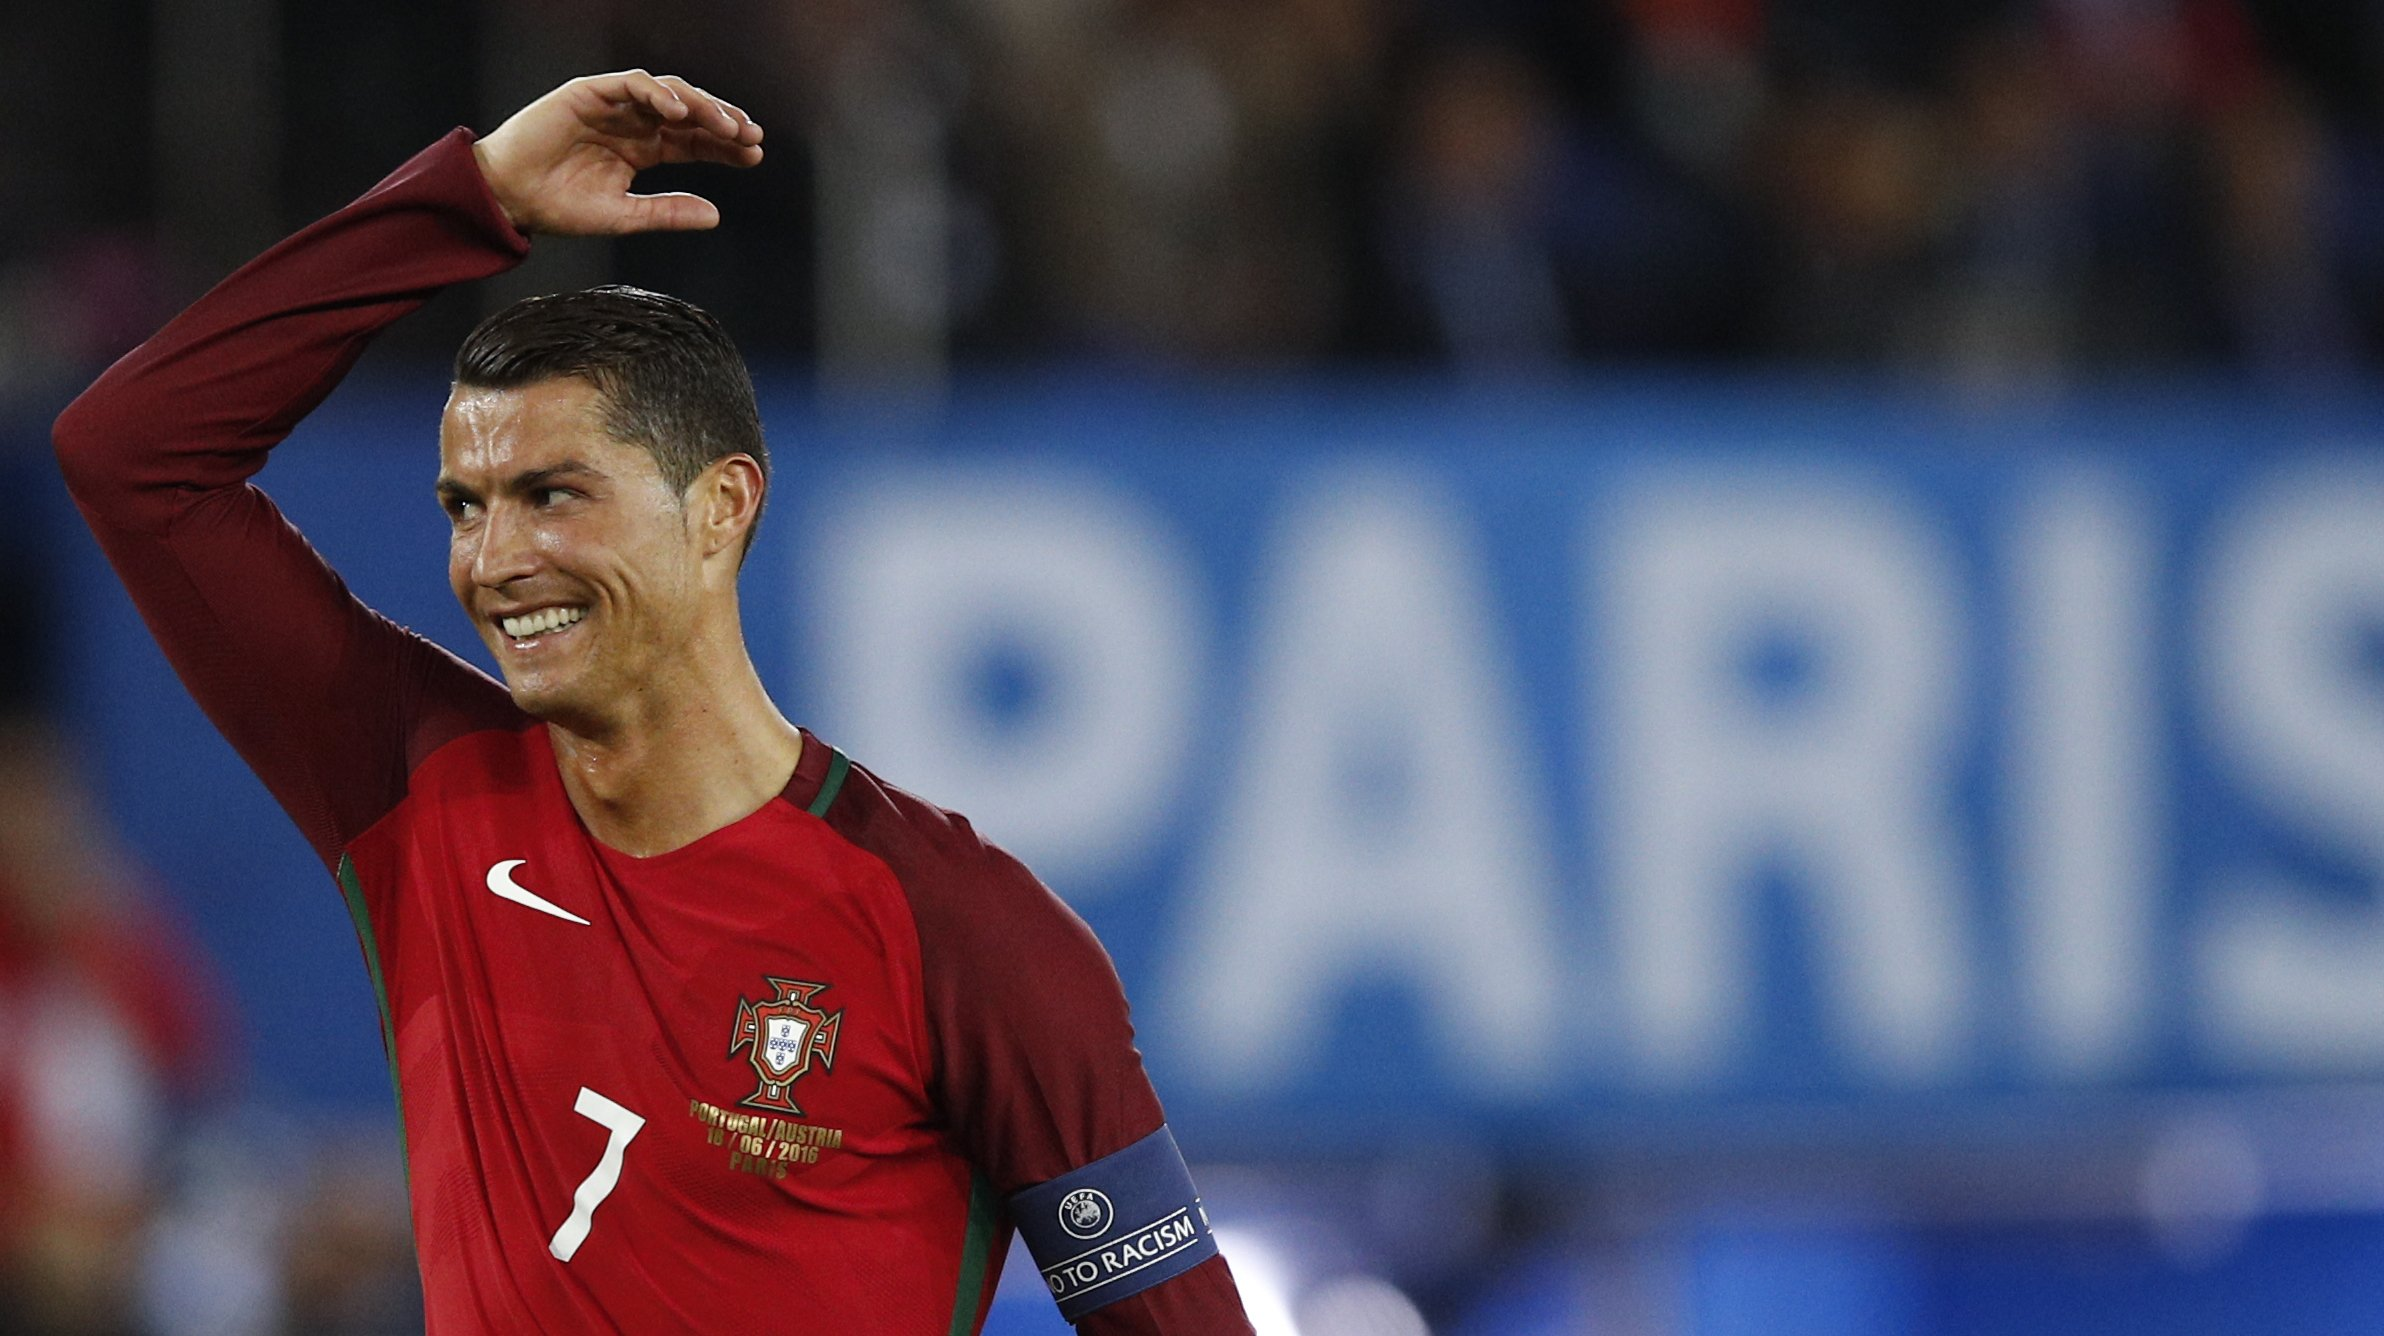 Heartbreak for Ronaldo, Iceland at Euro 2016